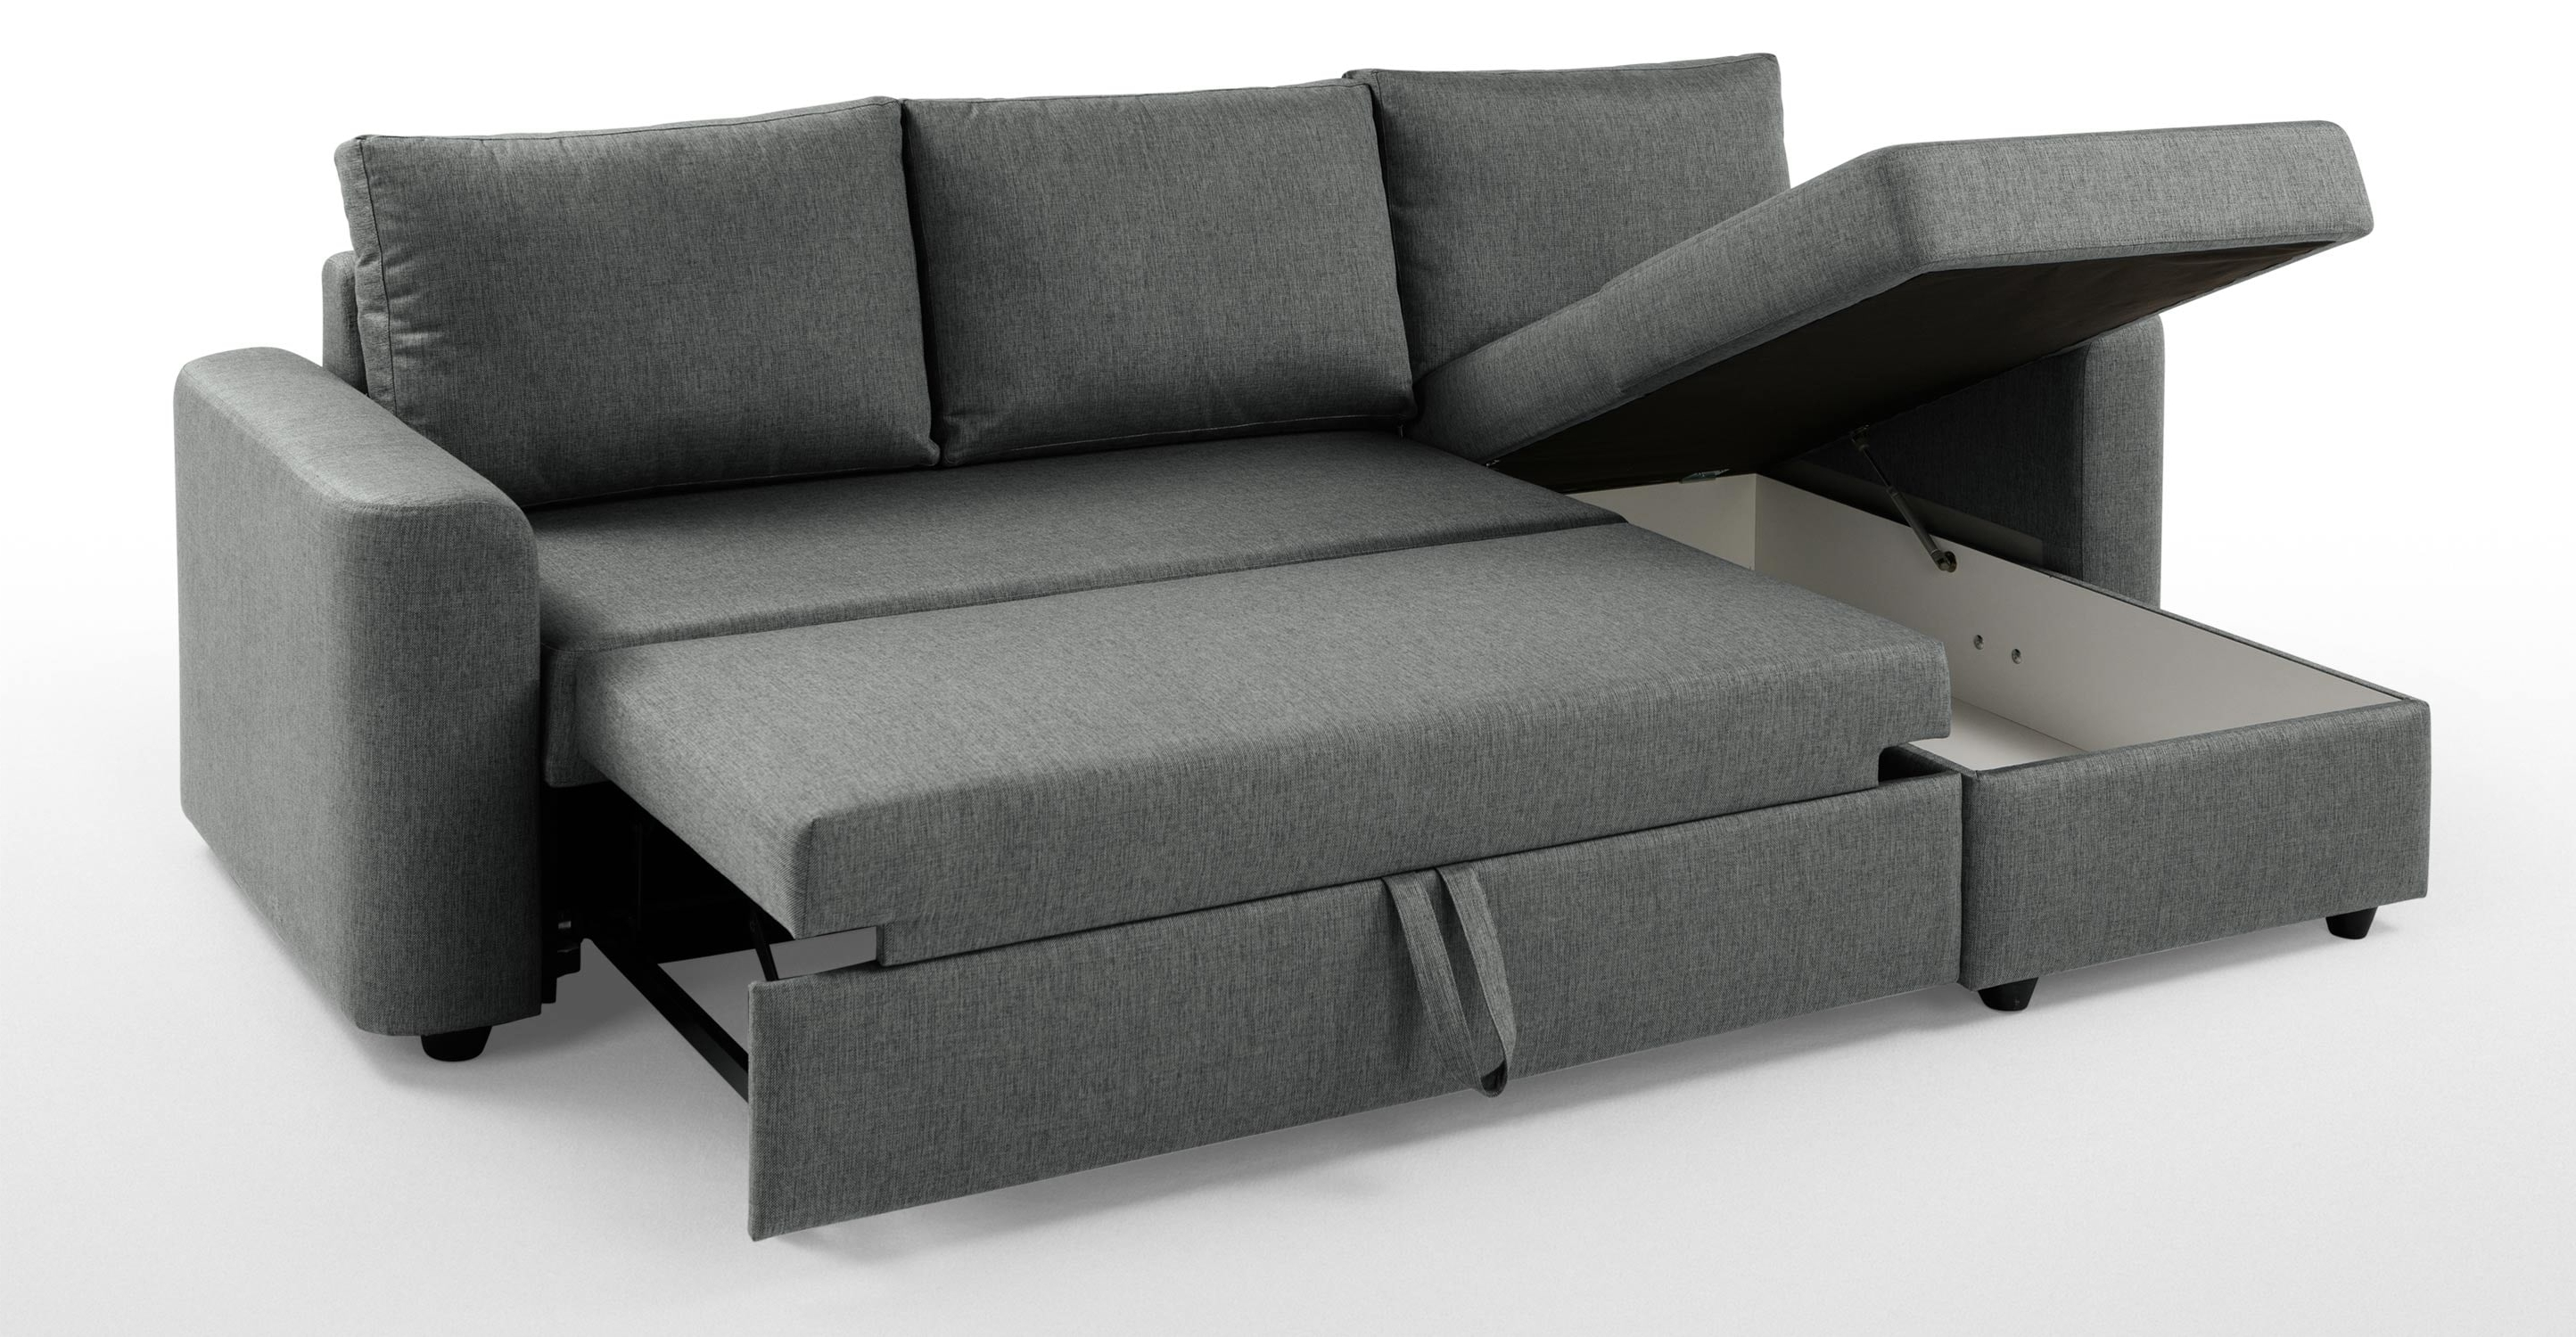 Famous Chaise Sofa Beds With Storage Regarding Top 52 Great Fresh Gorgeous Gray Chaise Sofa And Beautiful Storage (View 9 of 15)